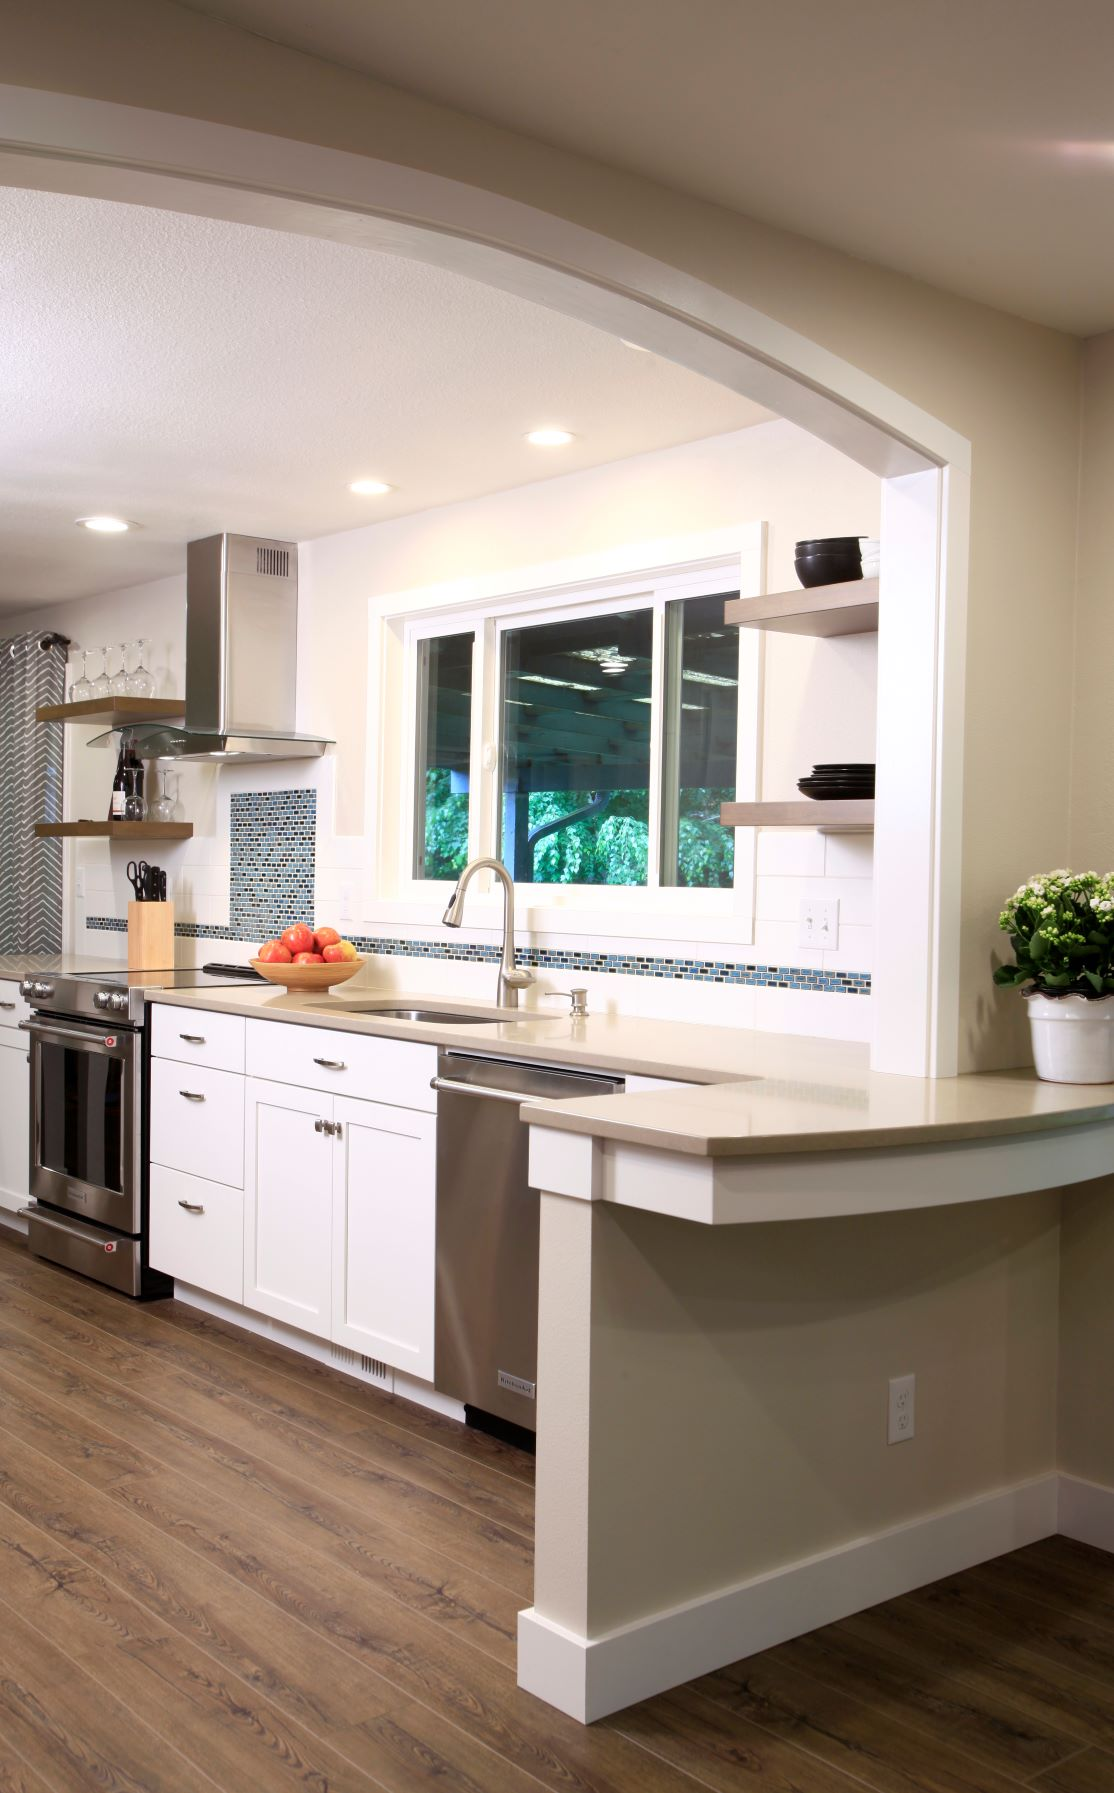 The renovated kitchen is much more functional, making better use of existing space.